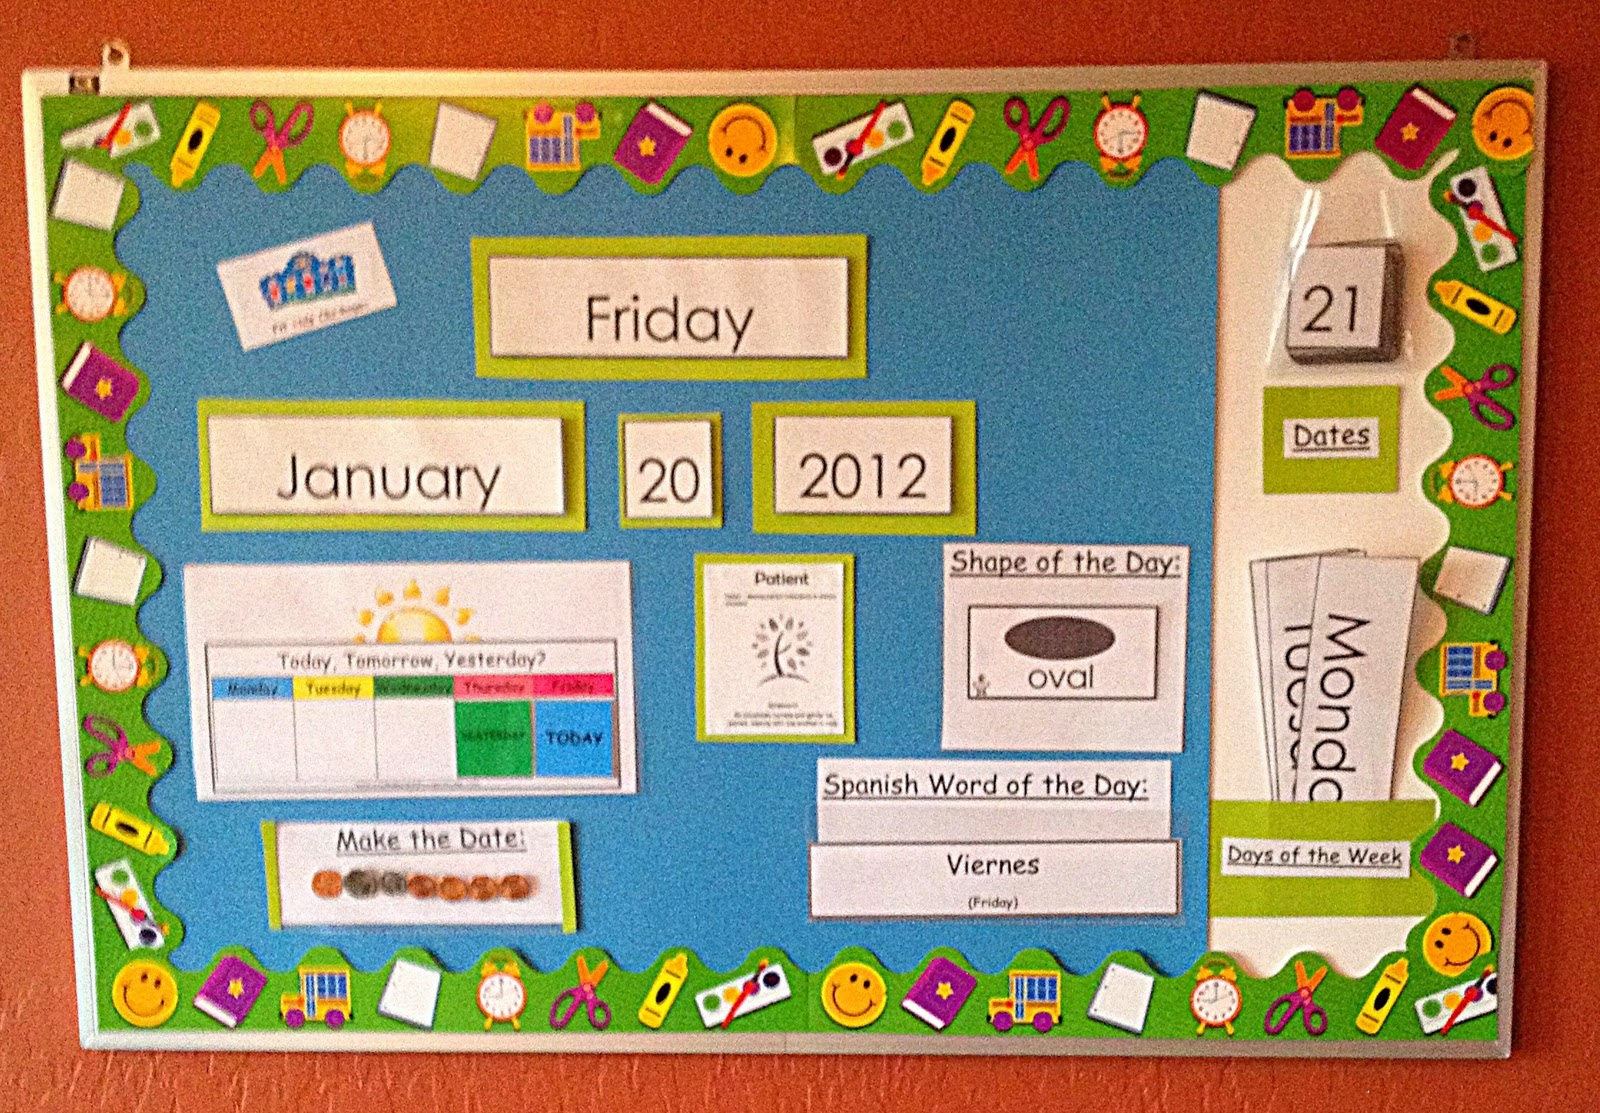 Fit Kids Clubhouse Clubhouse Calendar Yesterday Or Tomorrow